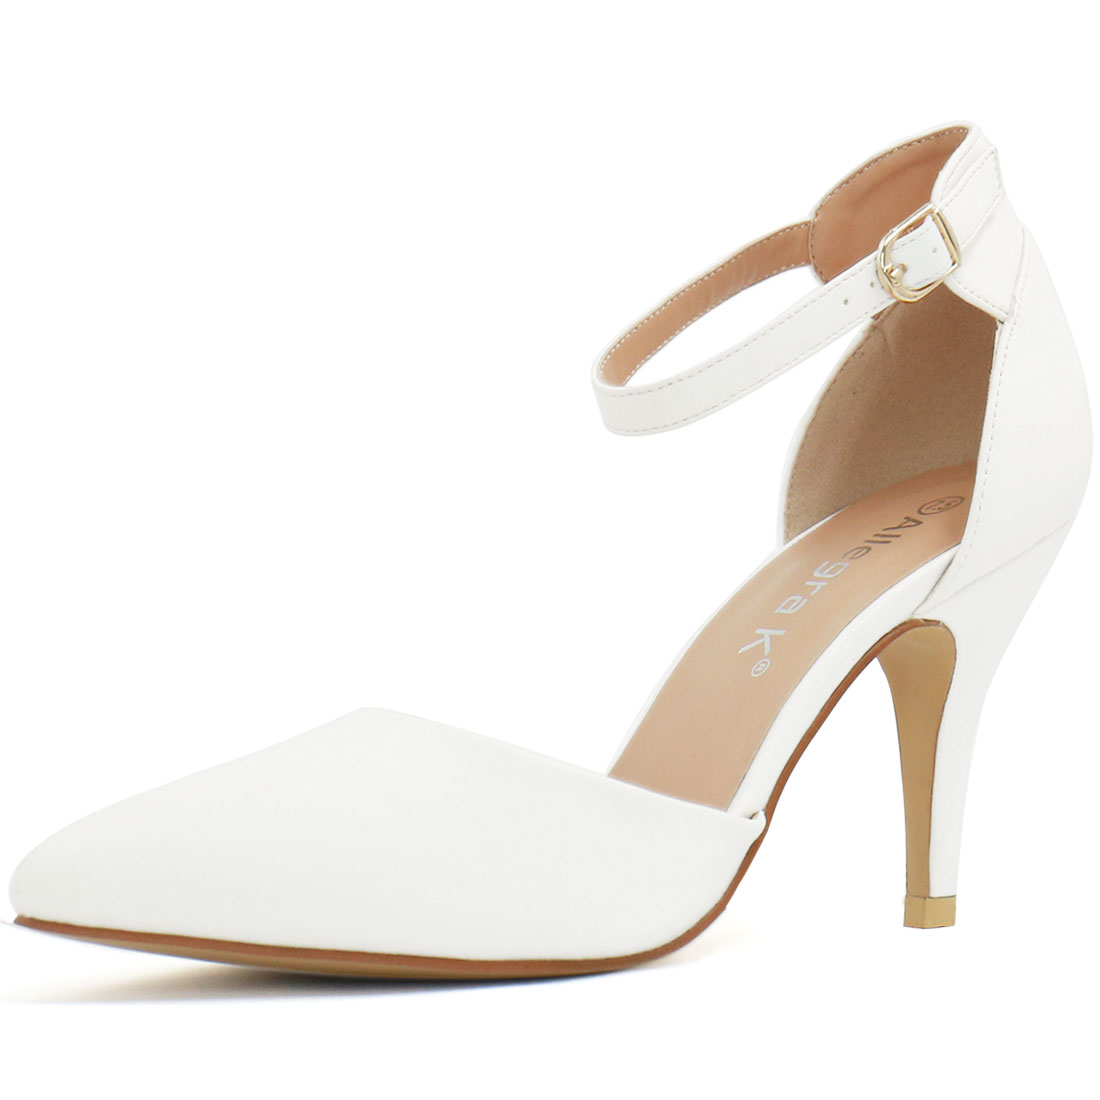 Woman Pointed Toe Stiletto Heel Ankle Strap Pumps White US 5.5